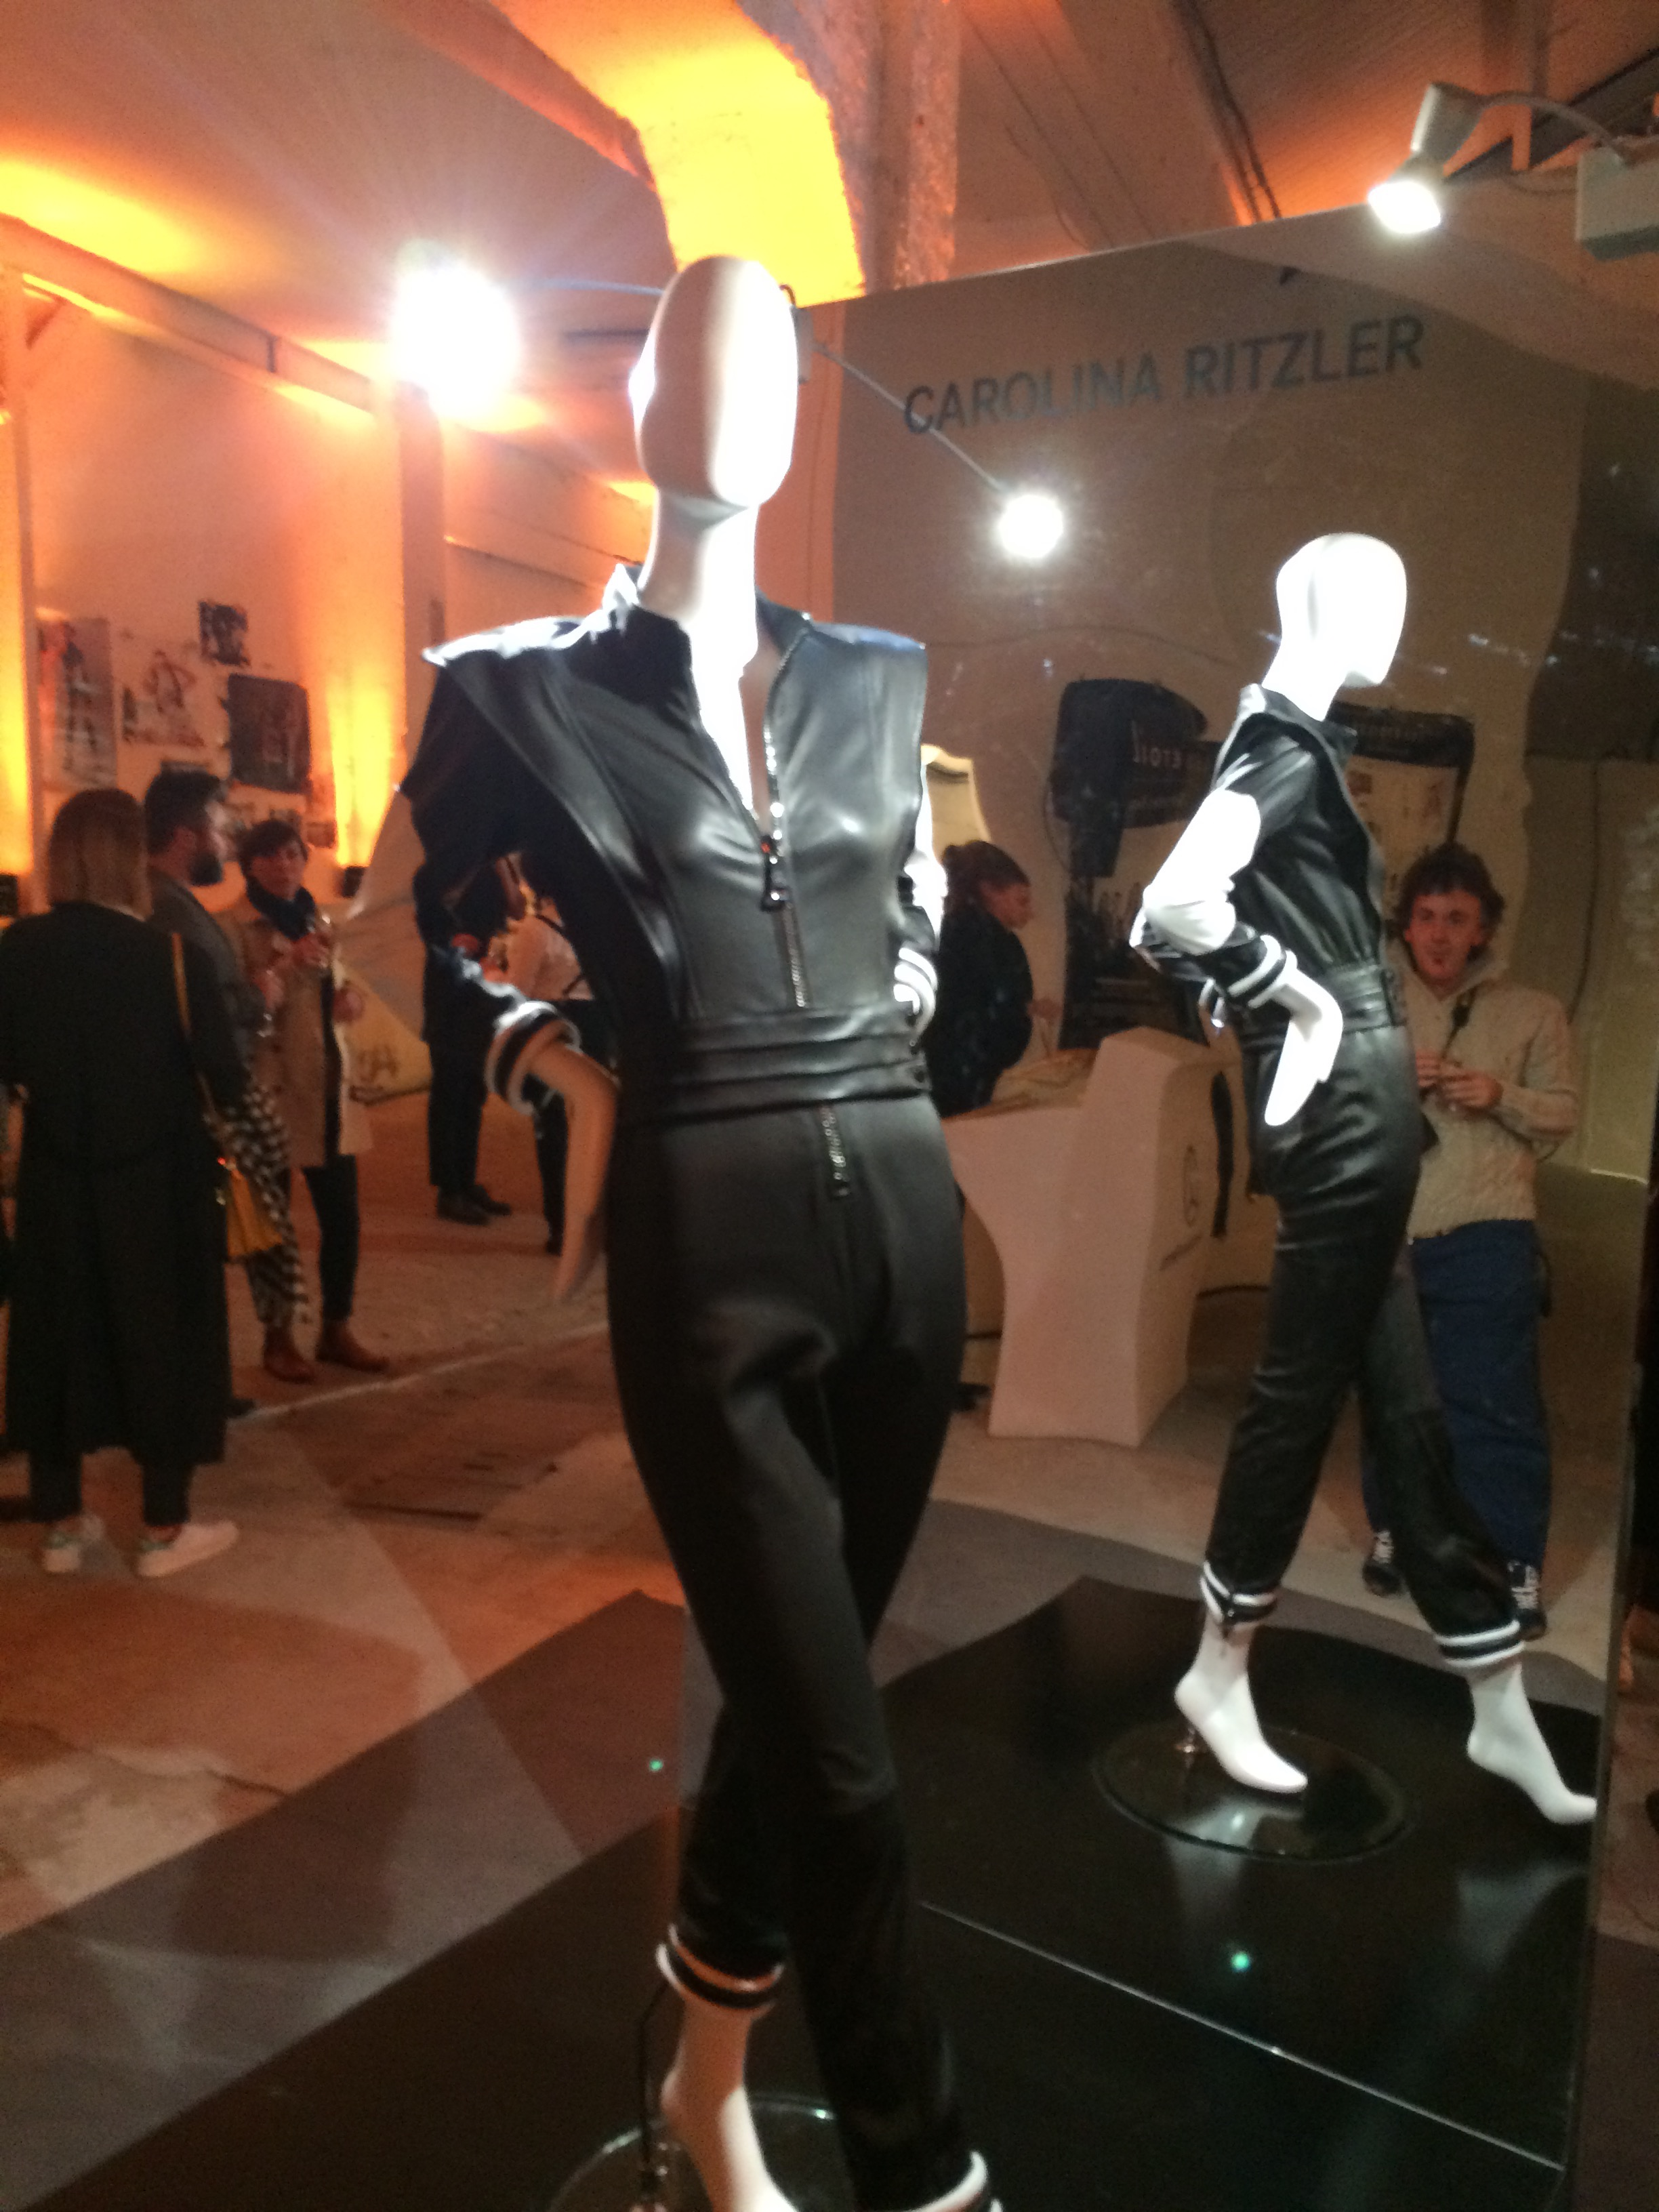 Carolina Ritzler catsuit on display at Les Etoiles, Mercedez-Benz & Alexis Mabille cocktail party